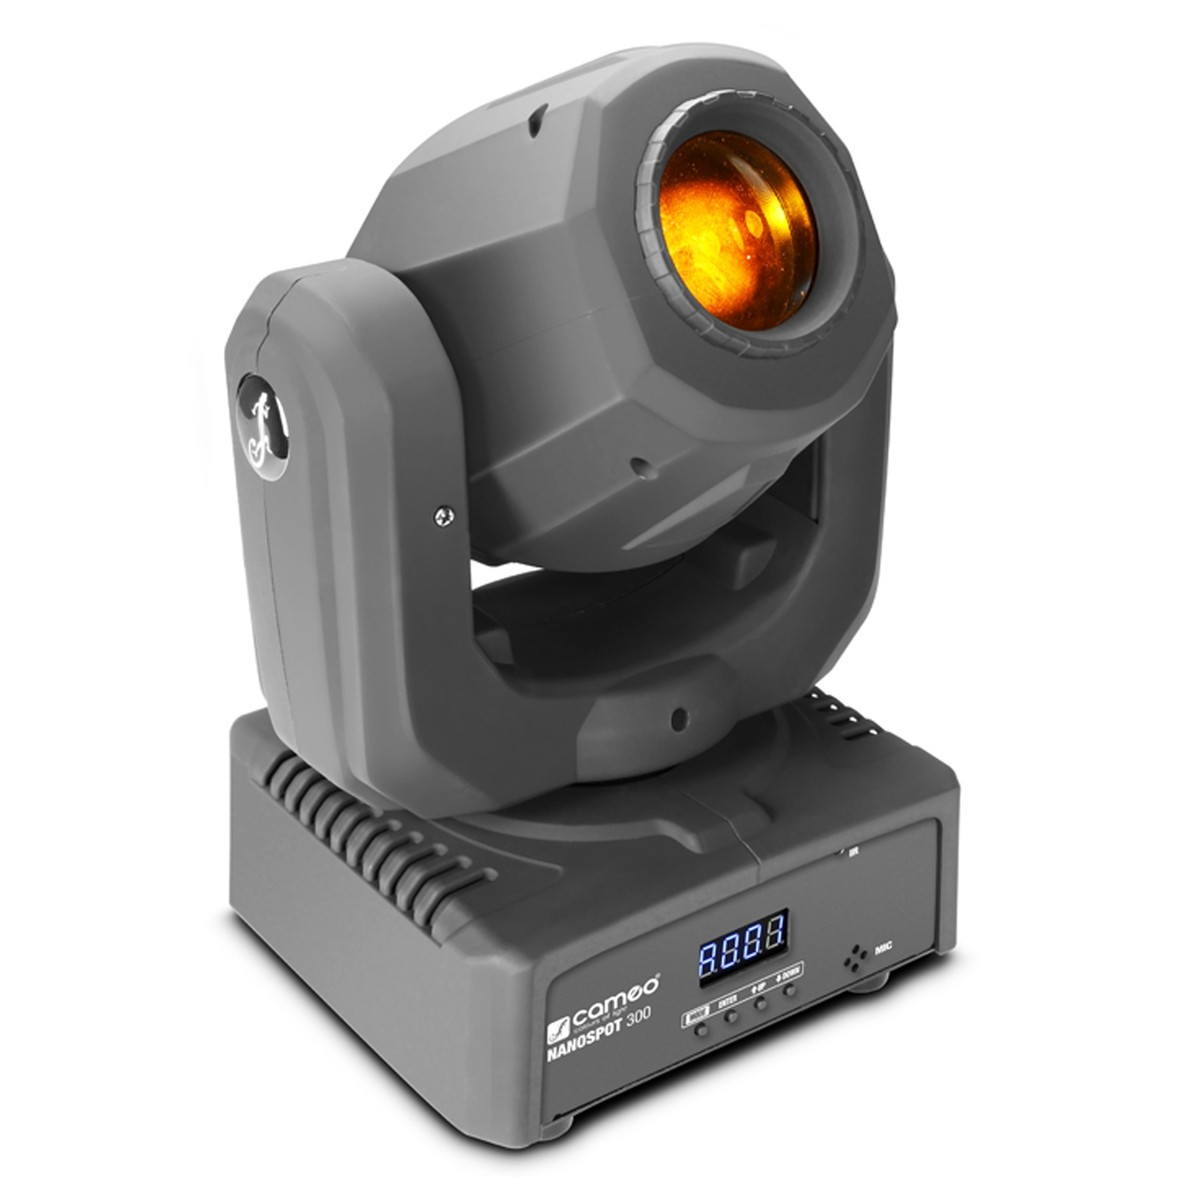 cameo nanospot 300 moving head light at gear4music. Black Bedroom Furniture Sets. Home Design Ideas